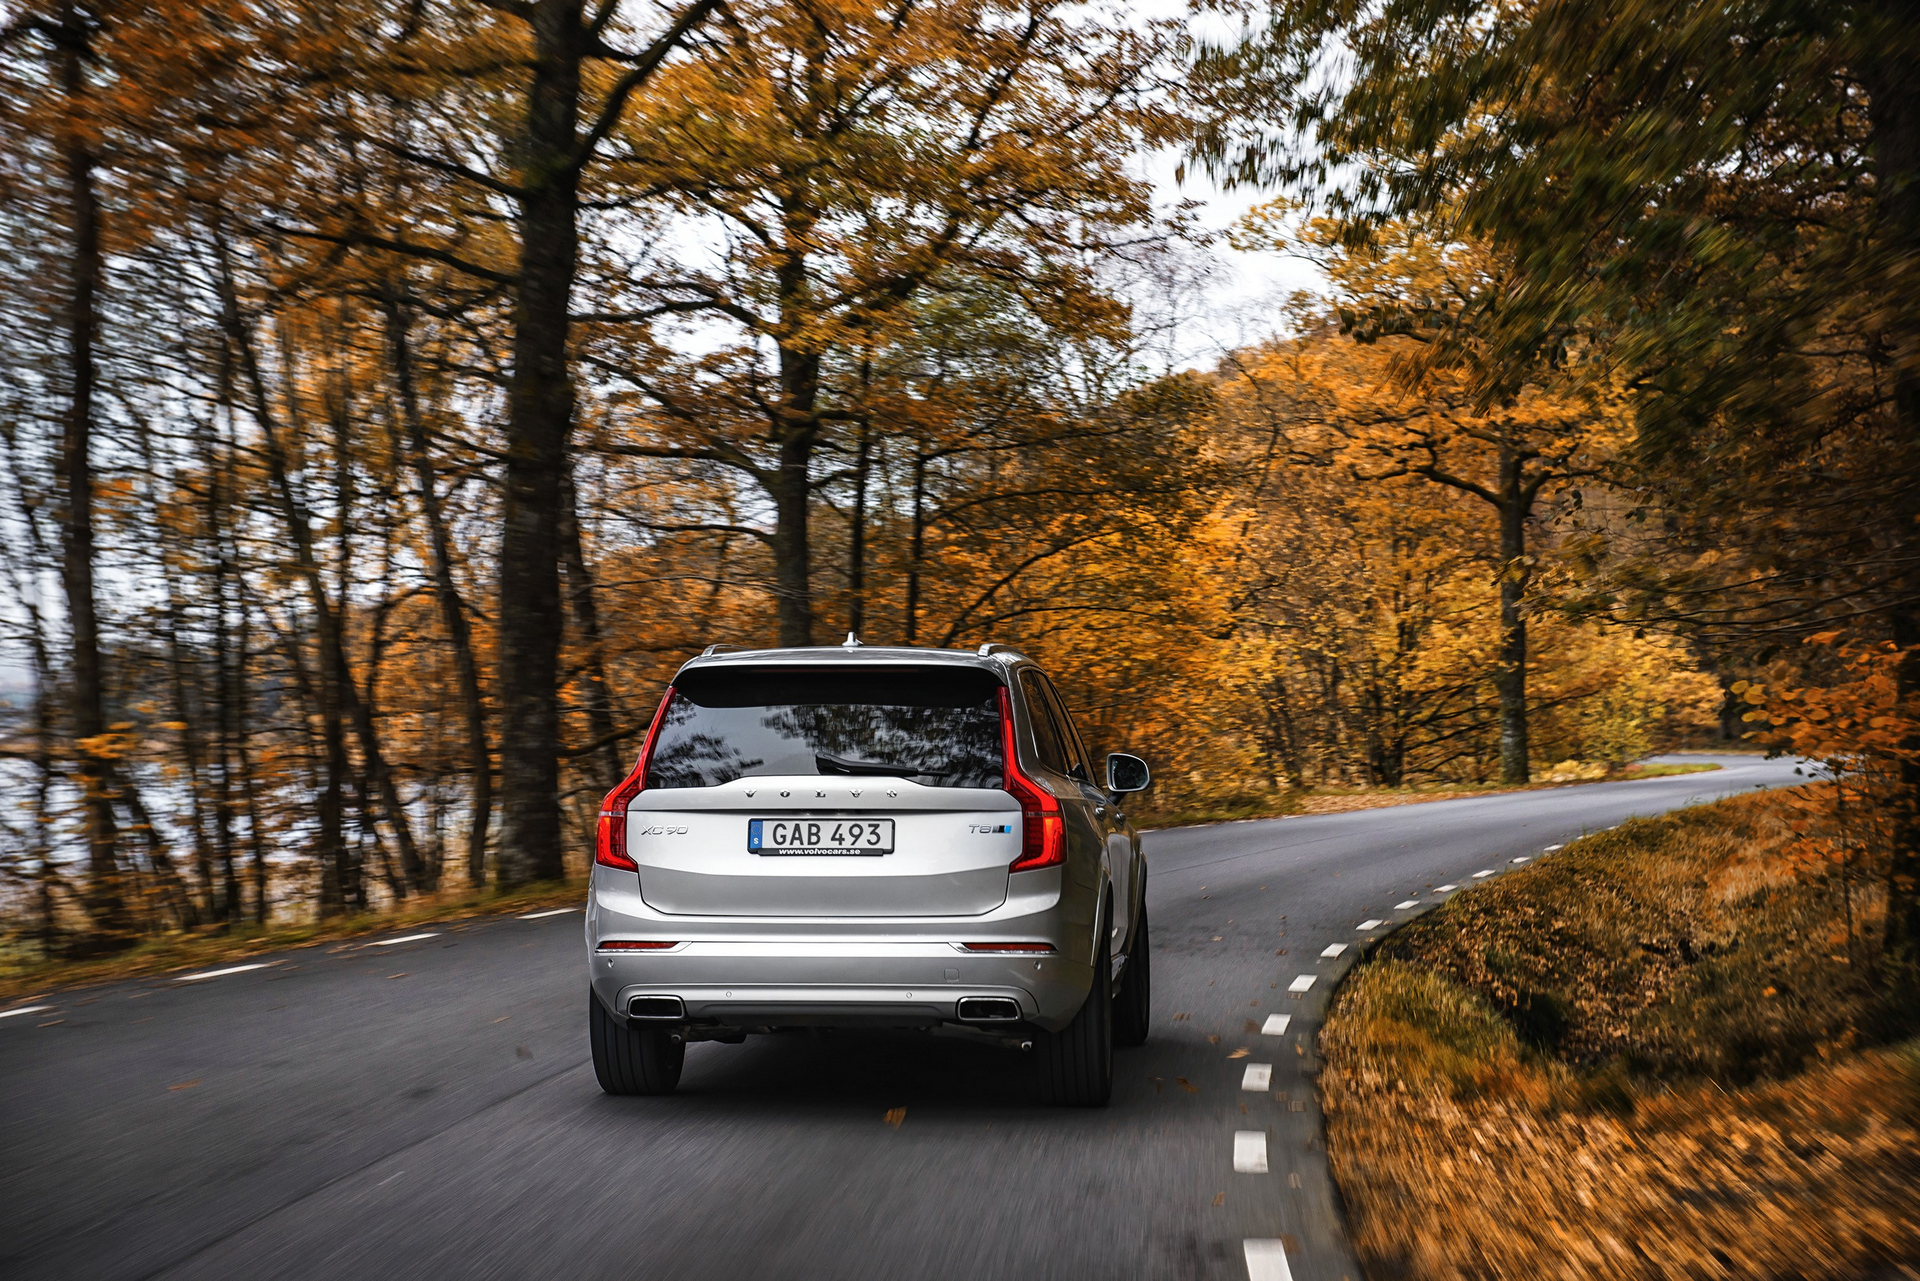 Volvo XC90 © Zhejiang Geely Holding Group Co., Ltd